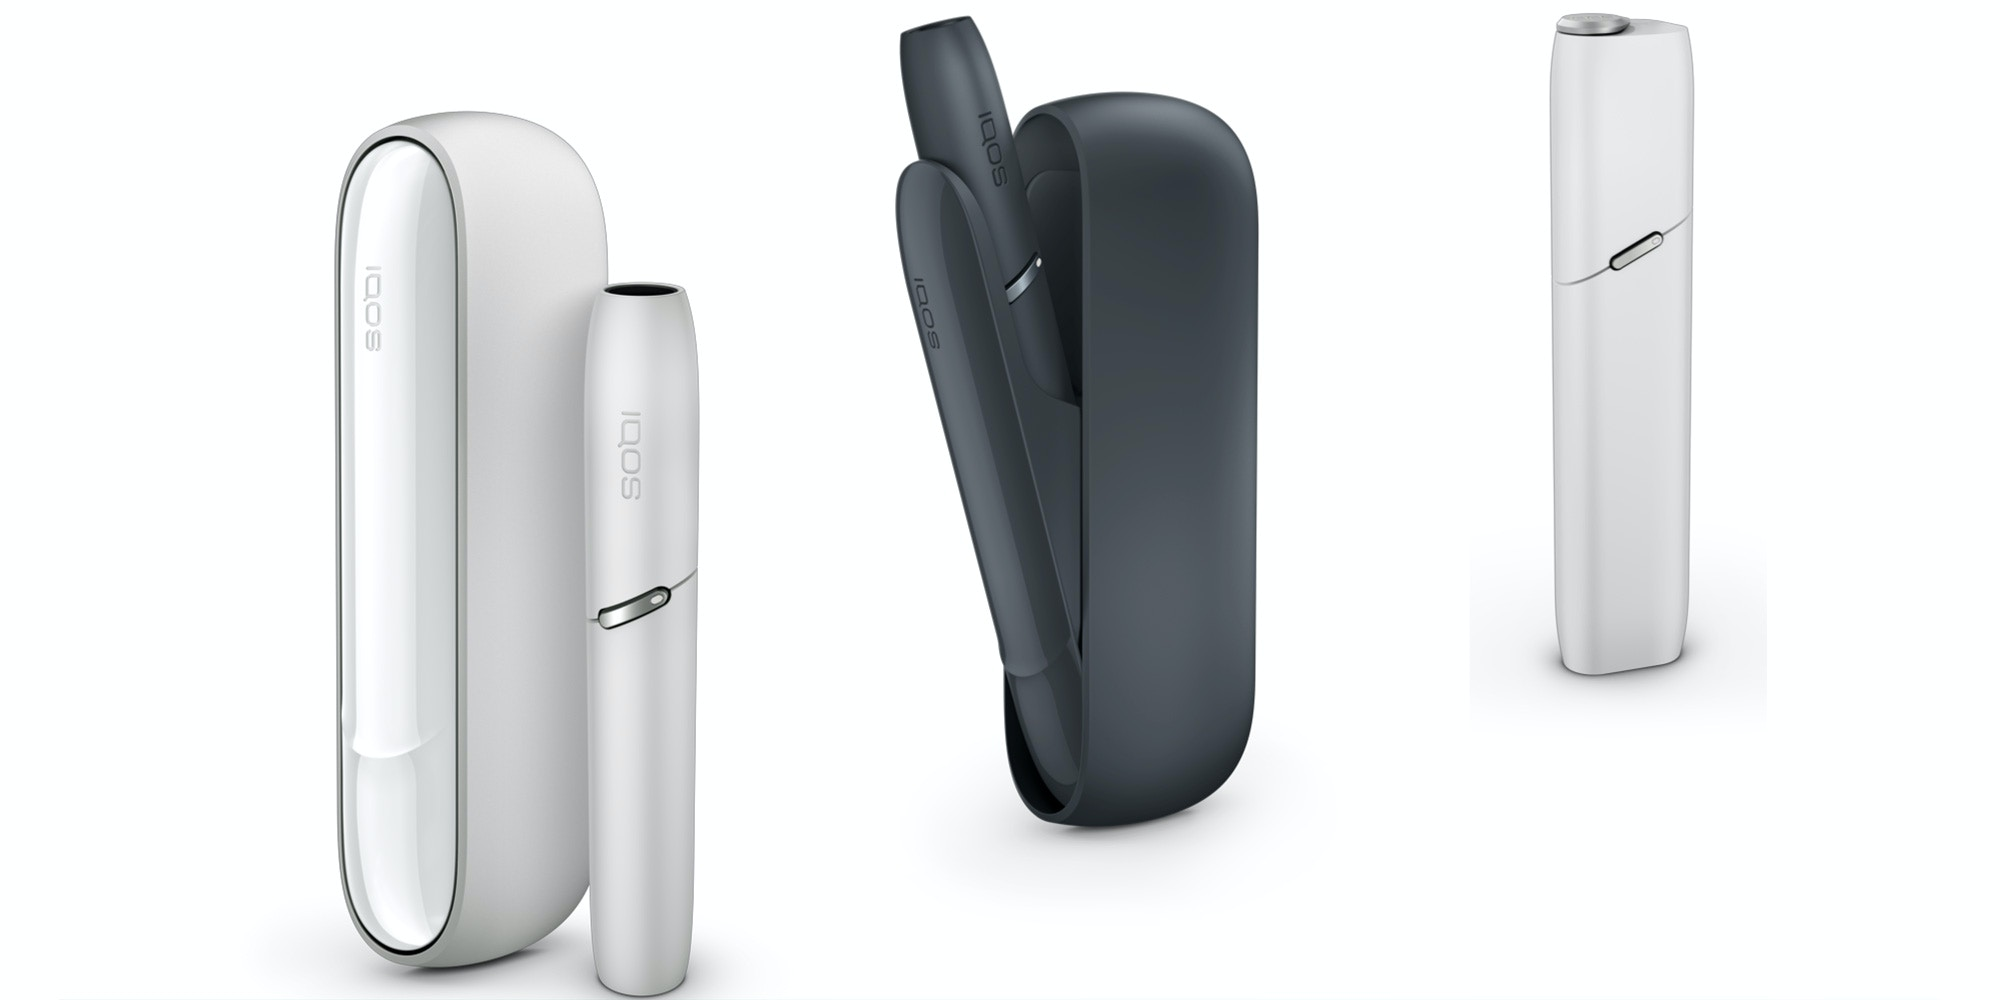 4. The IQOS Story (Gizelle Baker)